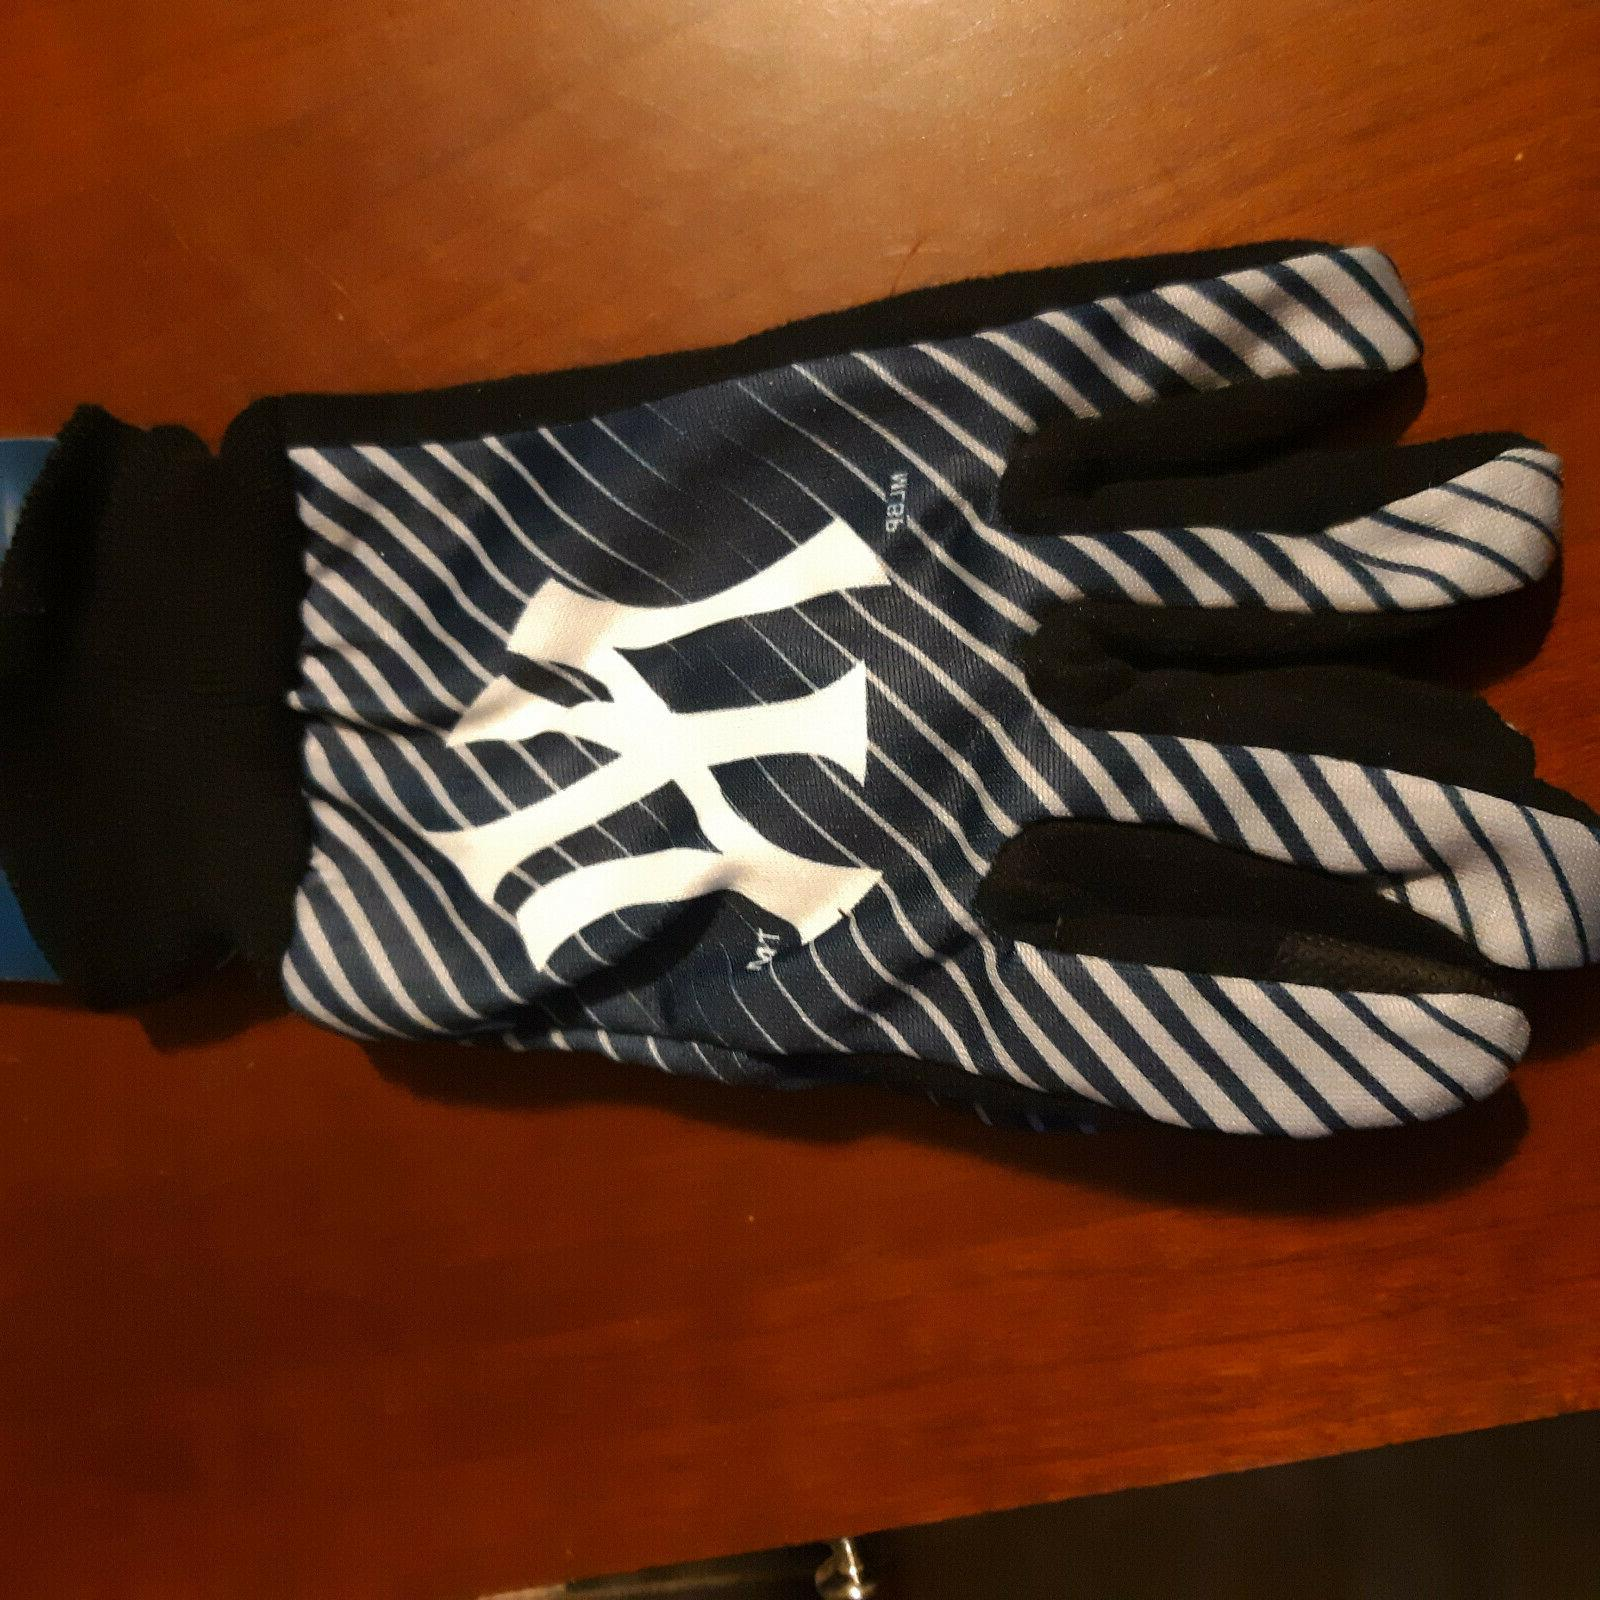 new york yankees texting gloves free shipping